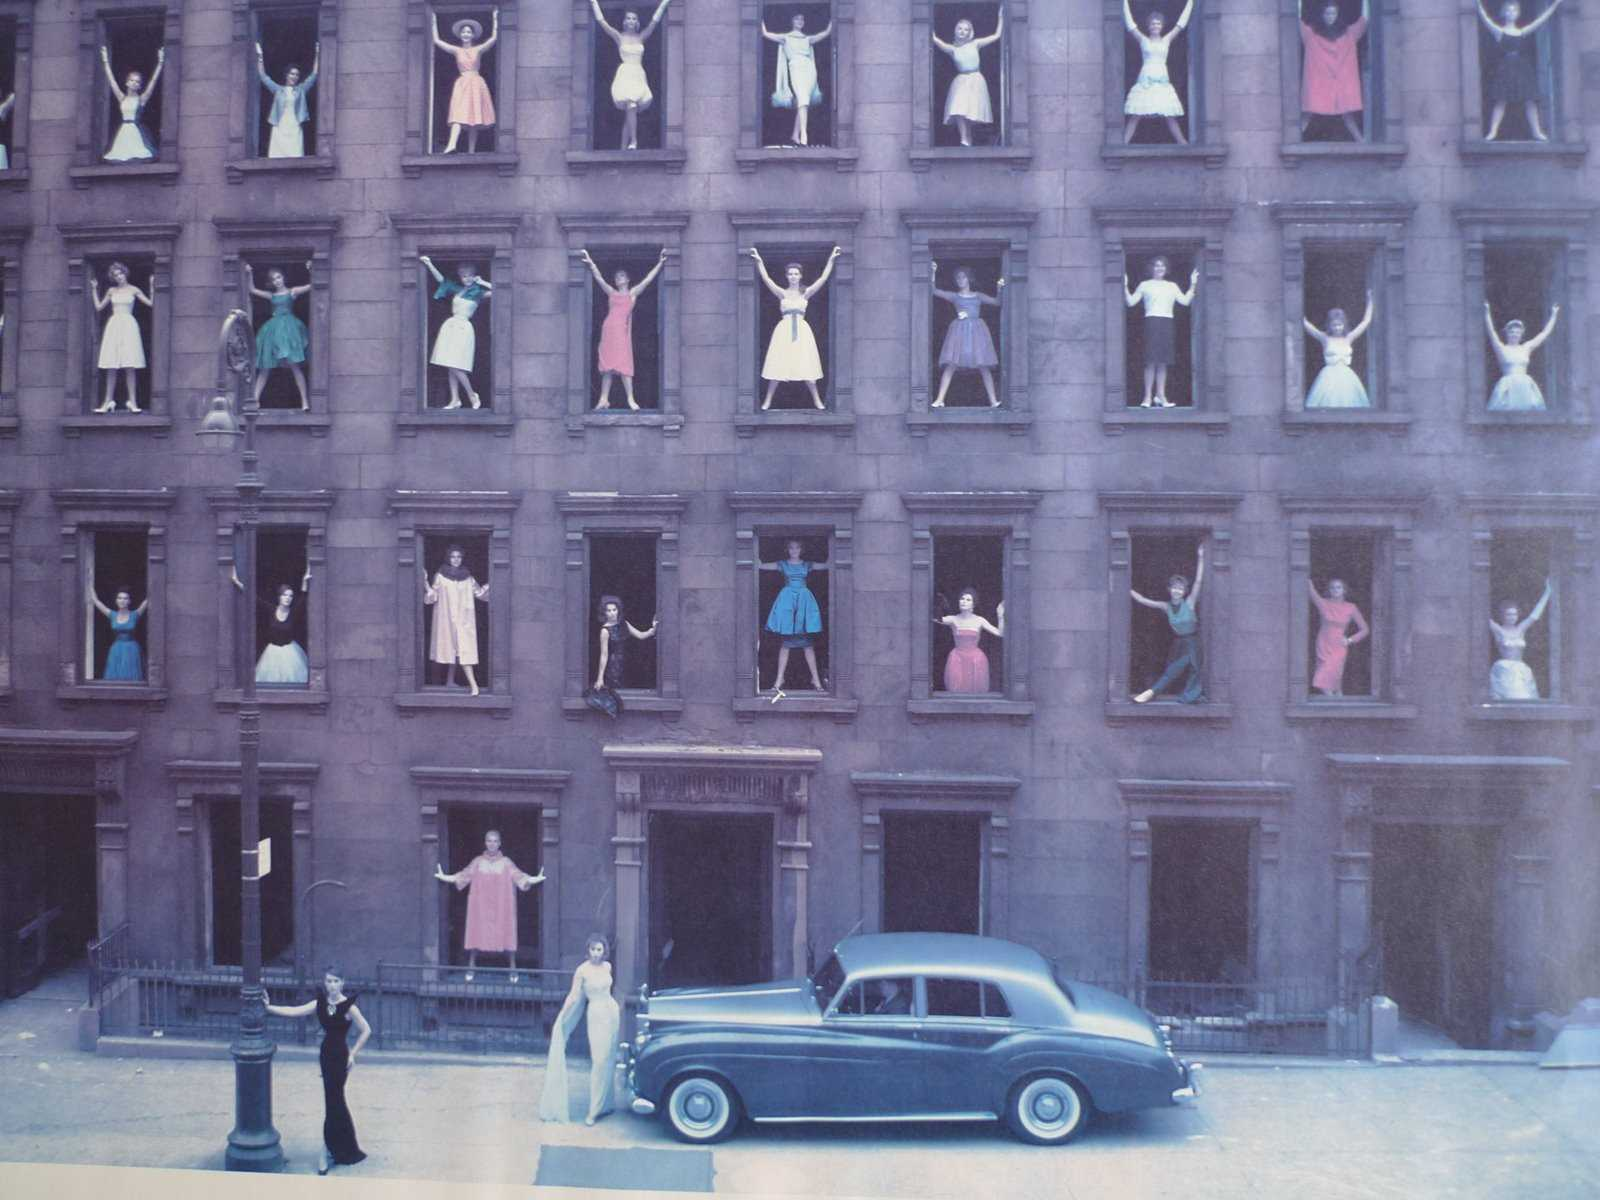 Vintage Photography by Ormond Gigli